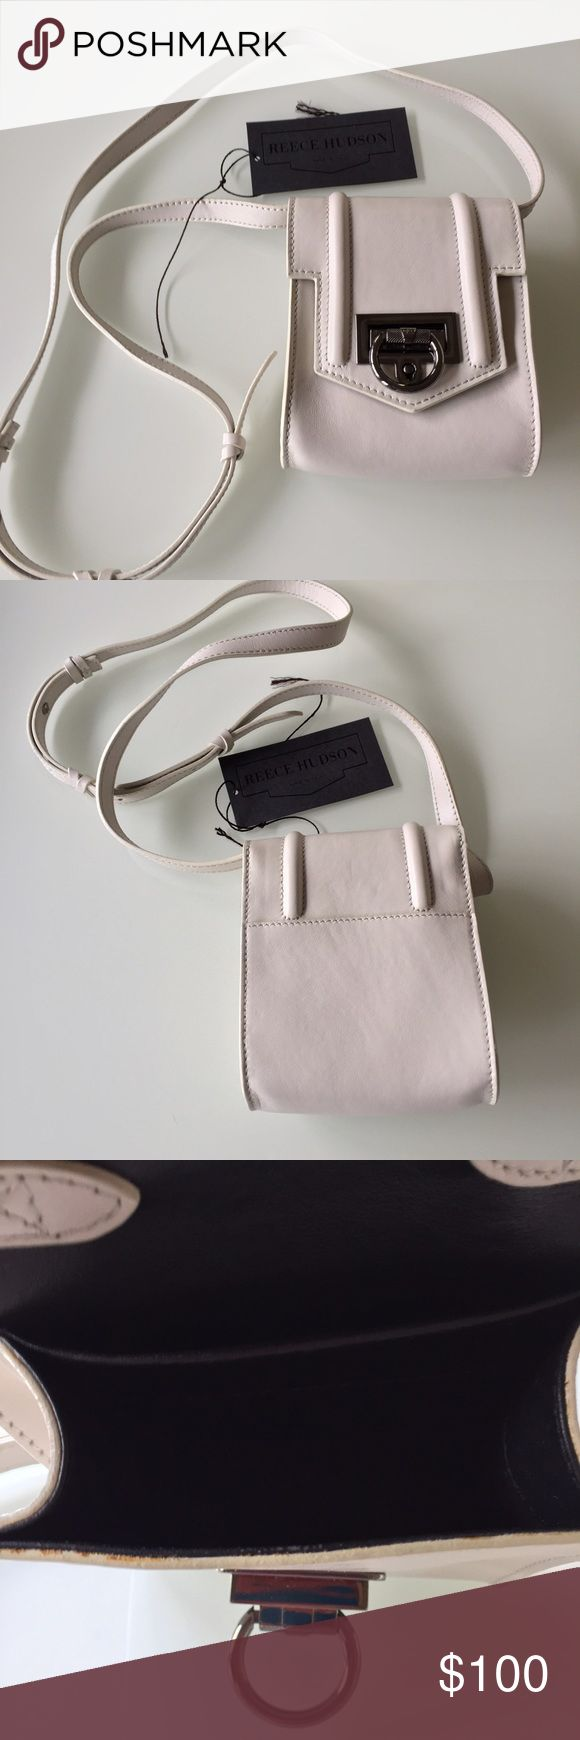 """REESE HUDSON Length 6""""/w 5""""/made in Italy/ took off tags but never used it/ perfect for cell phone, ID and cash/adjustable strap/off white color/no dust bag/ Reece Hudson Bags Mini Bags"""